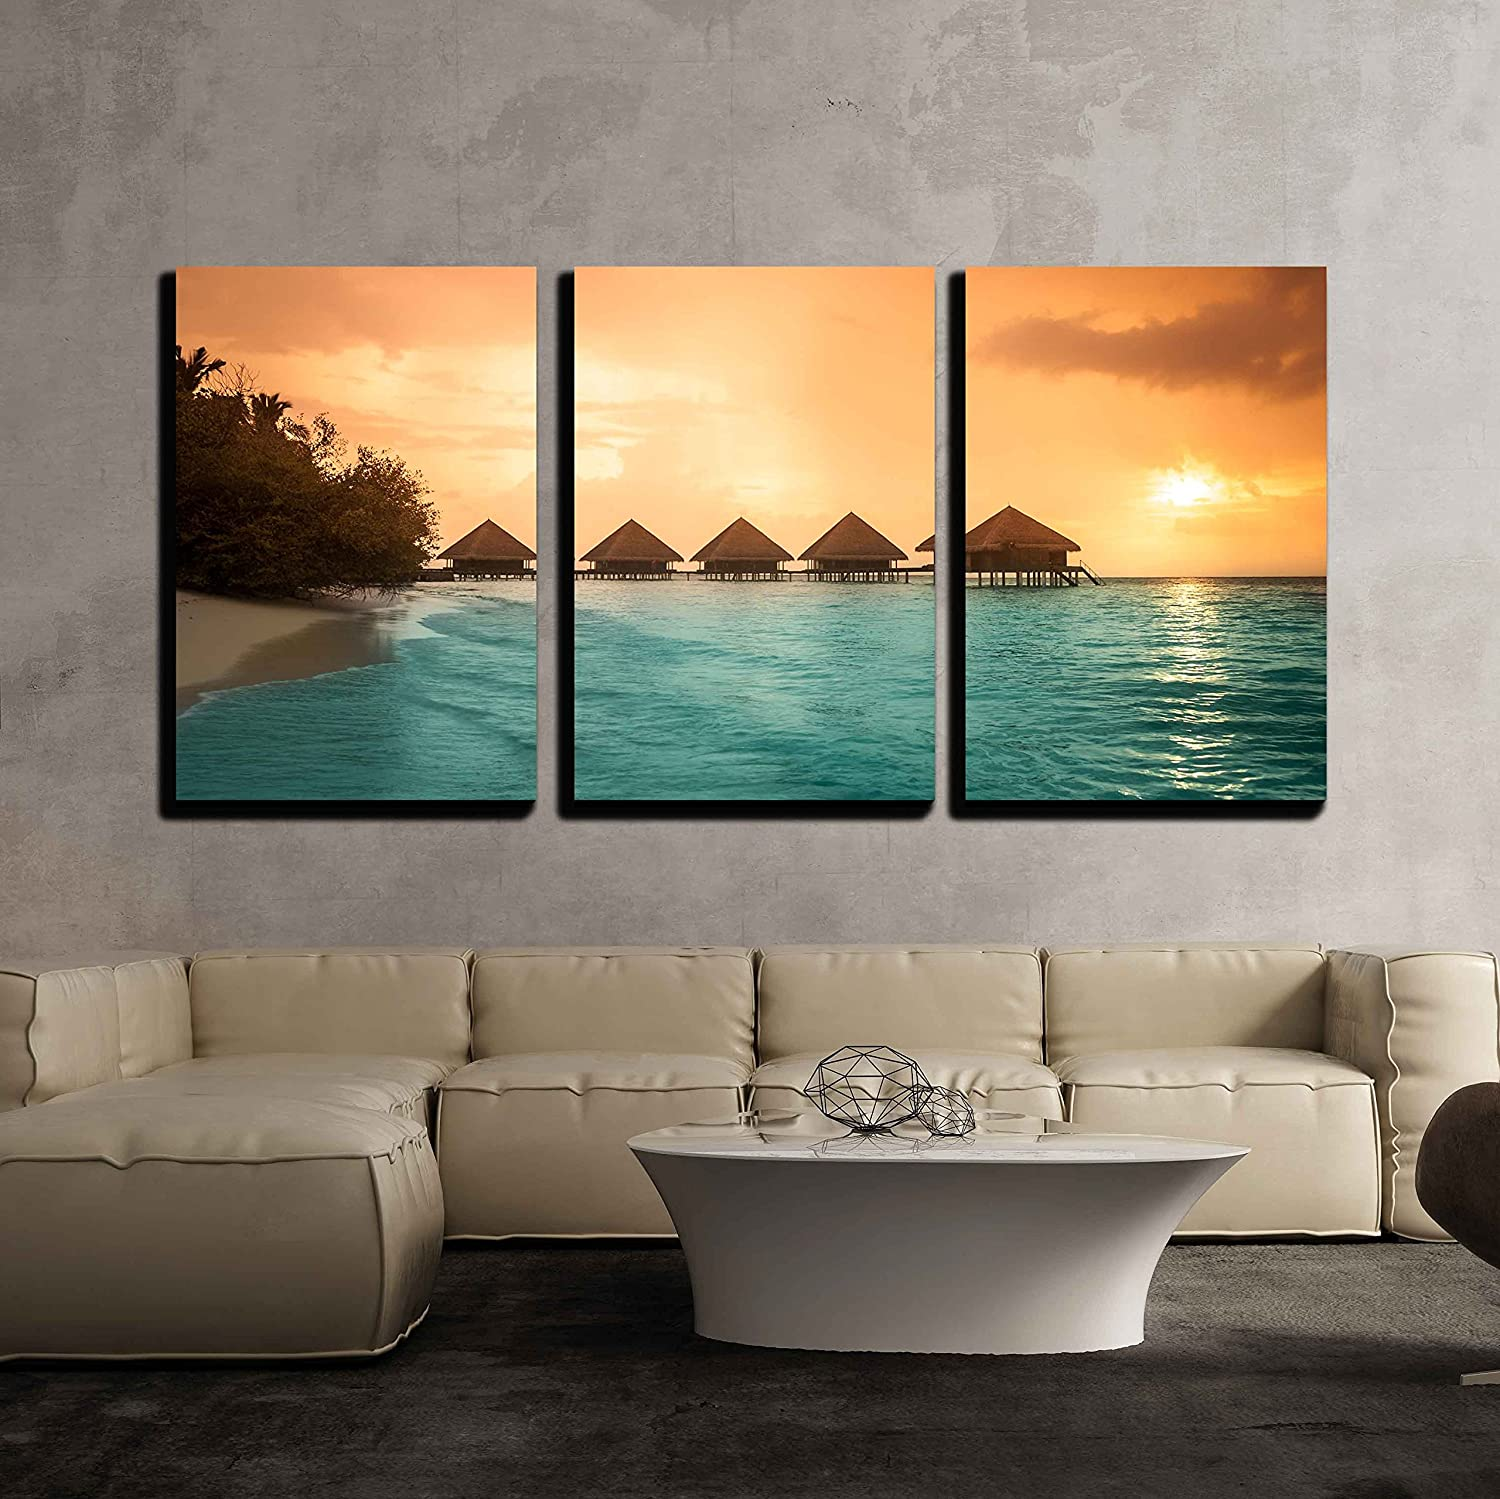 wallcom  art prints  framed art  canvas prints  greeting  - wall   piece canvas wall art  over water bungalows with steps intoamazing green lagoon  modern home decor stretched and framed ready to hang